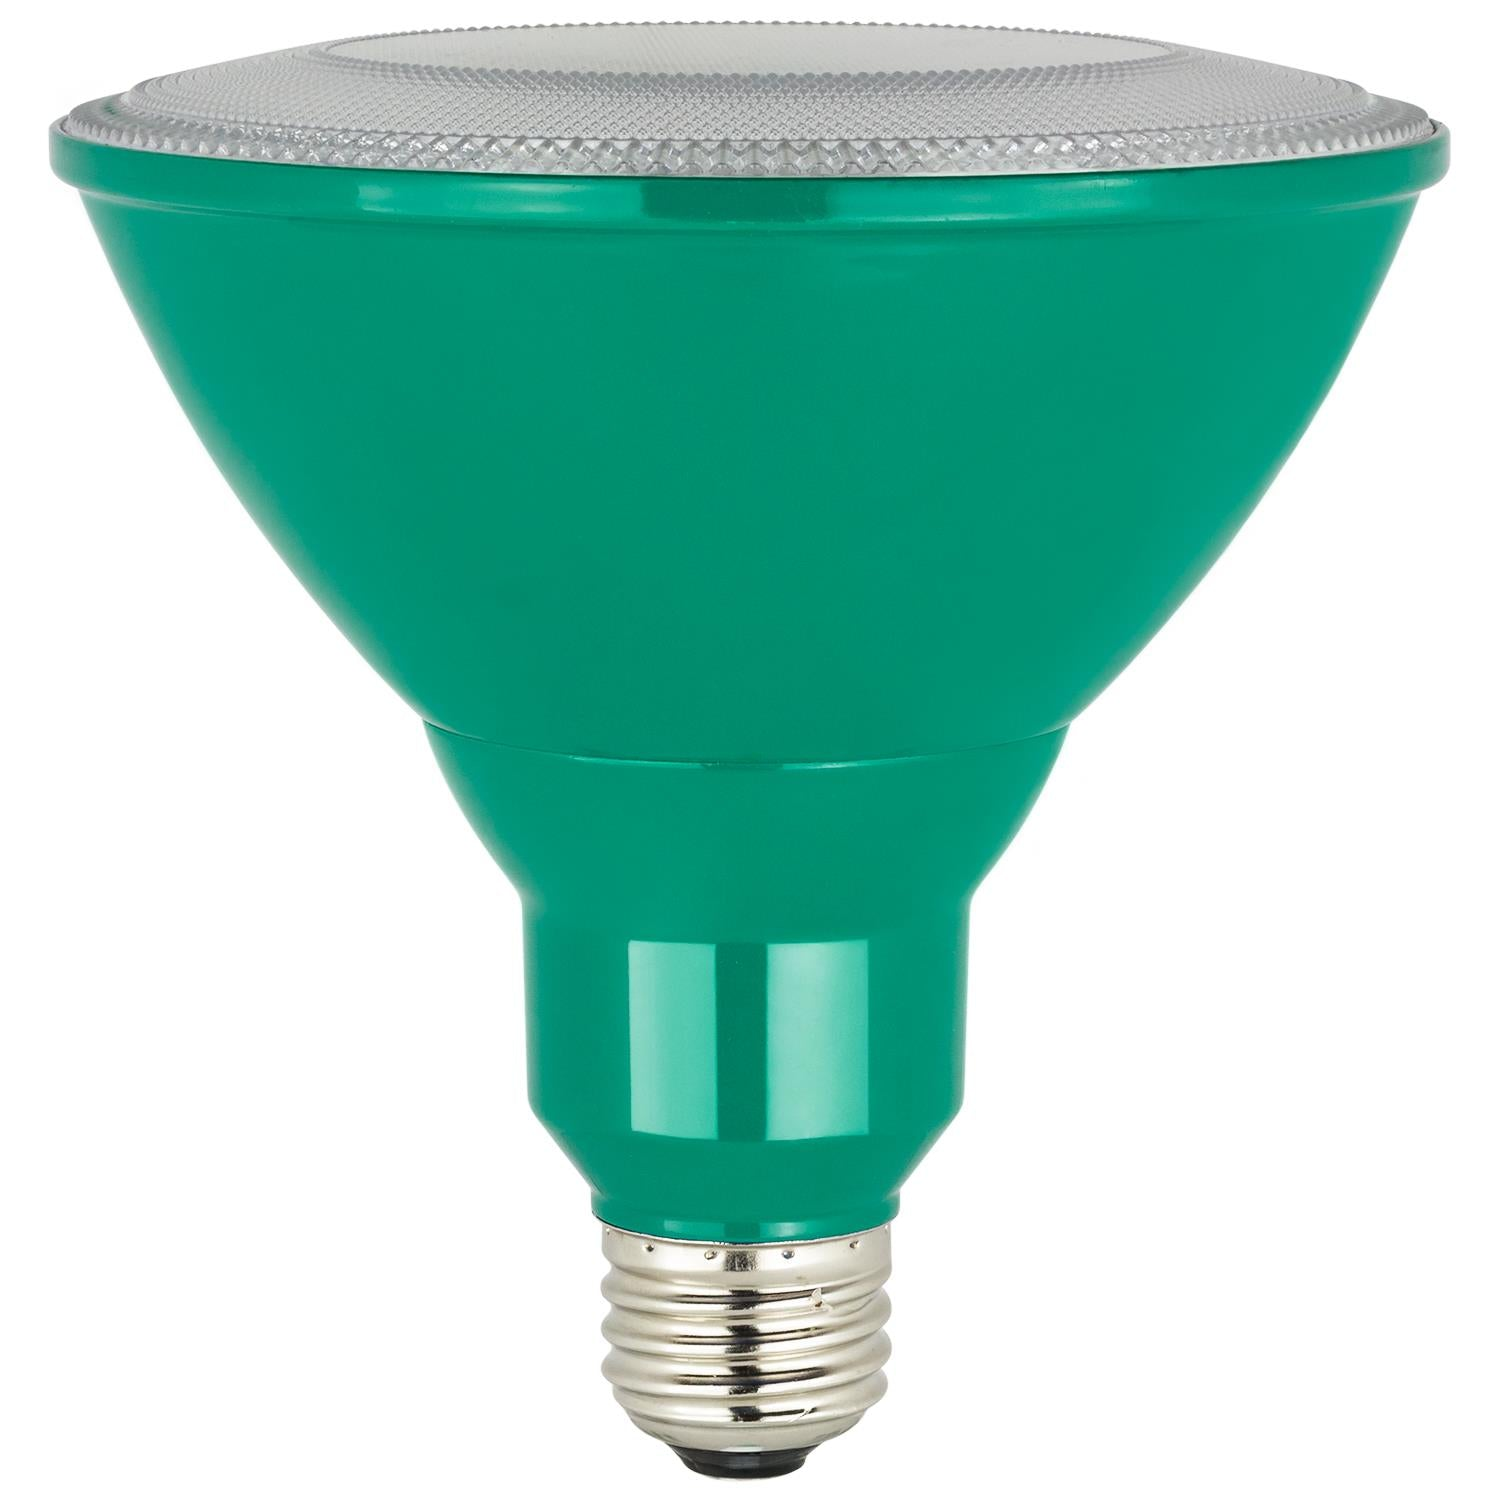 Sunlite 80552-SU LED Green PAR38 Colored Reflector 8w Light Bulb